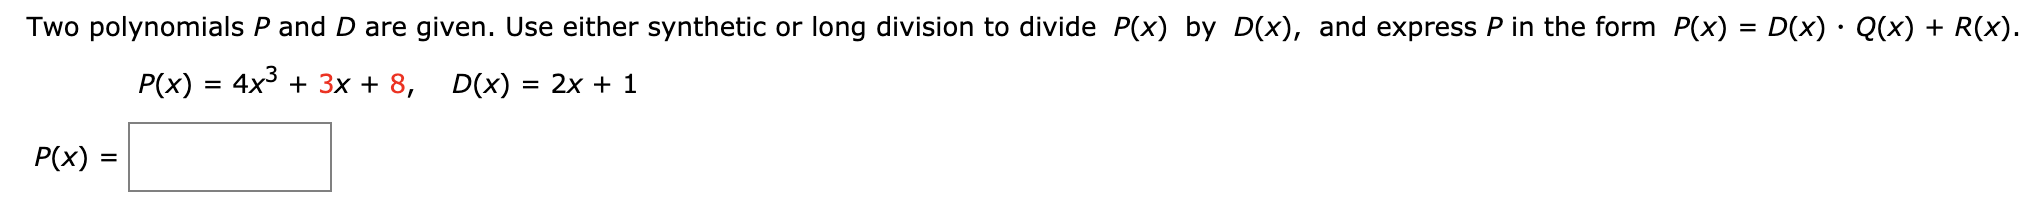 Two polynomials P and D are given. Use either synthetic or long division to divide P(x) by D(x), and express P in the form P(x) = D(x) - Q(x) + R(x) P(x) 4x33x + 8 D(x) 2x + 1 P(x)